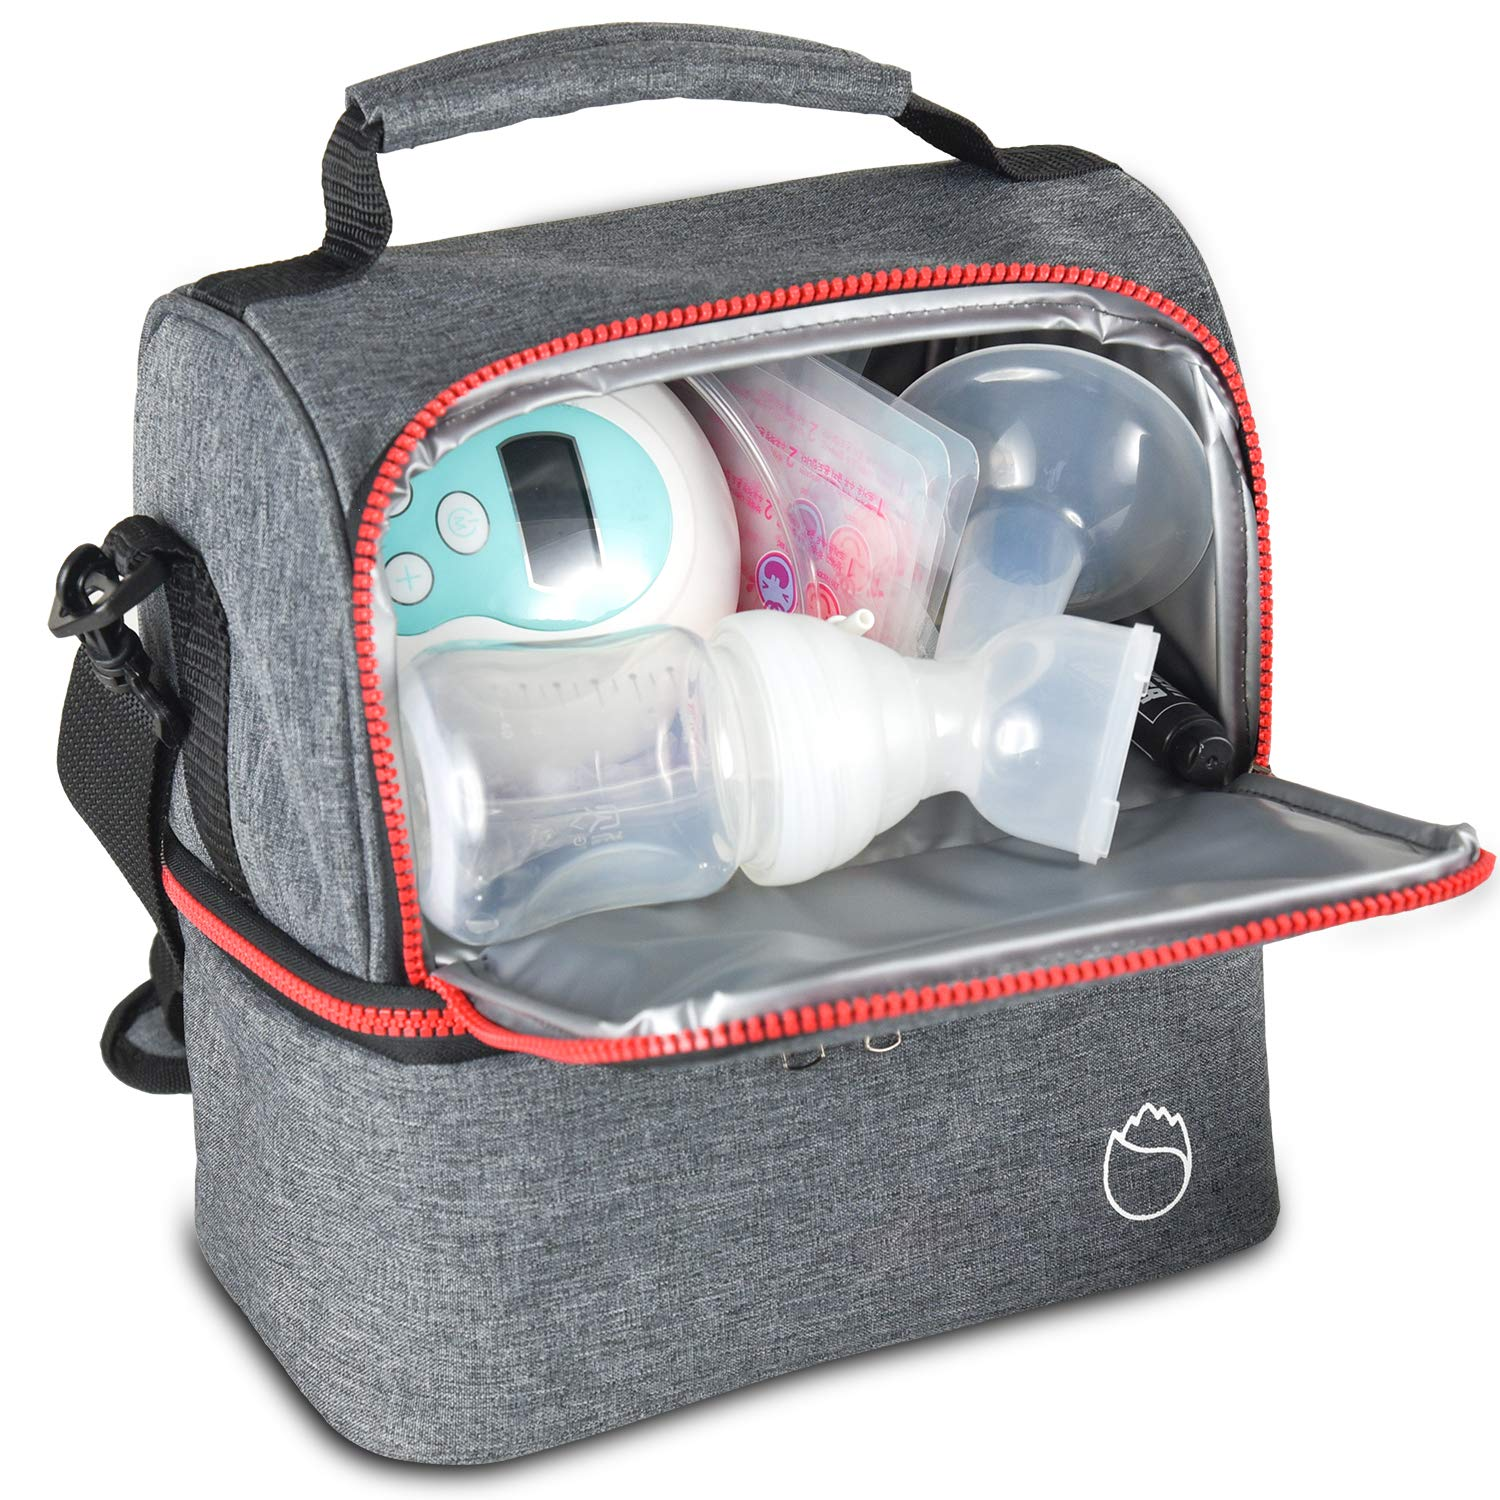 Freshore Breastmilk Bottle Coolers Bag - Insulated Breast Milk Tool Storage for Breastfeeding Moms Tote - Two-Layer Style Design Grey by Freshore